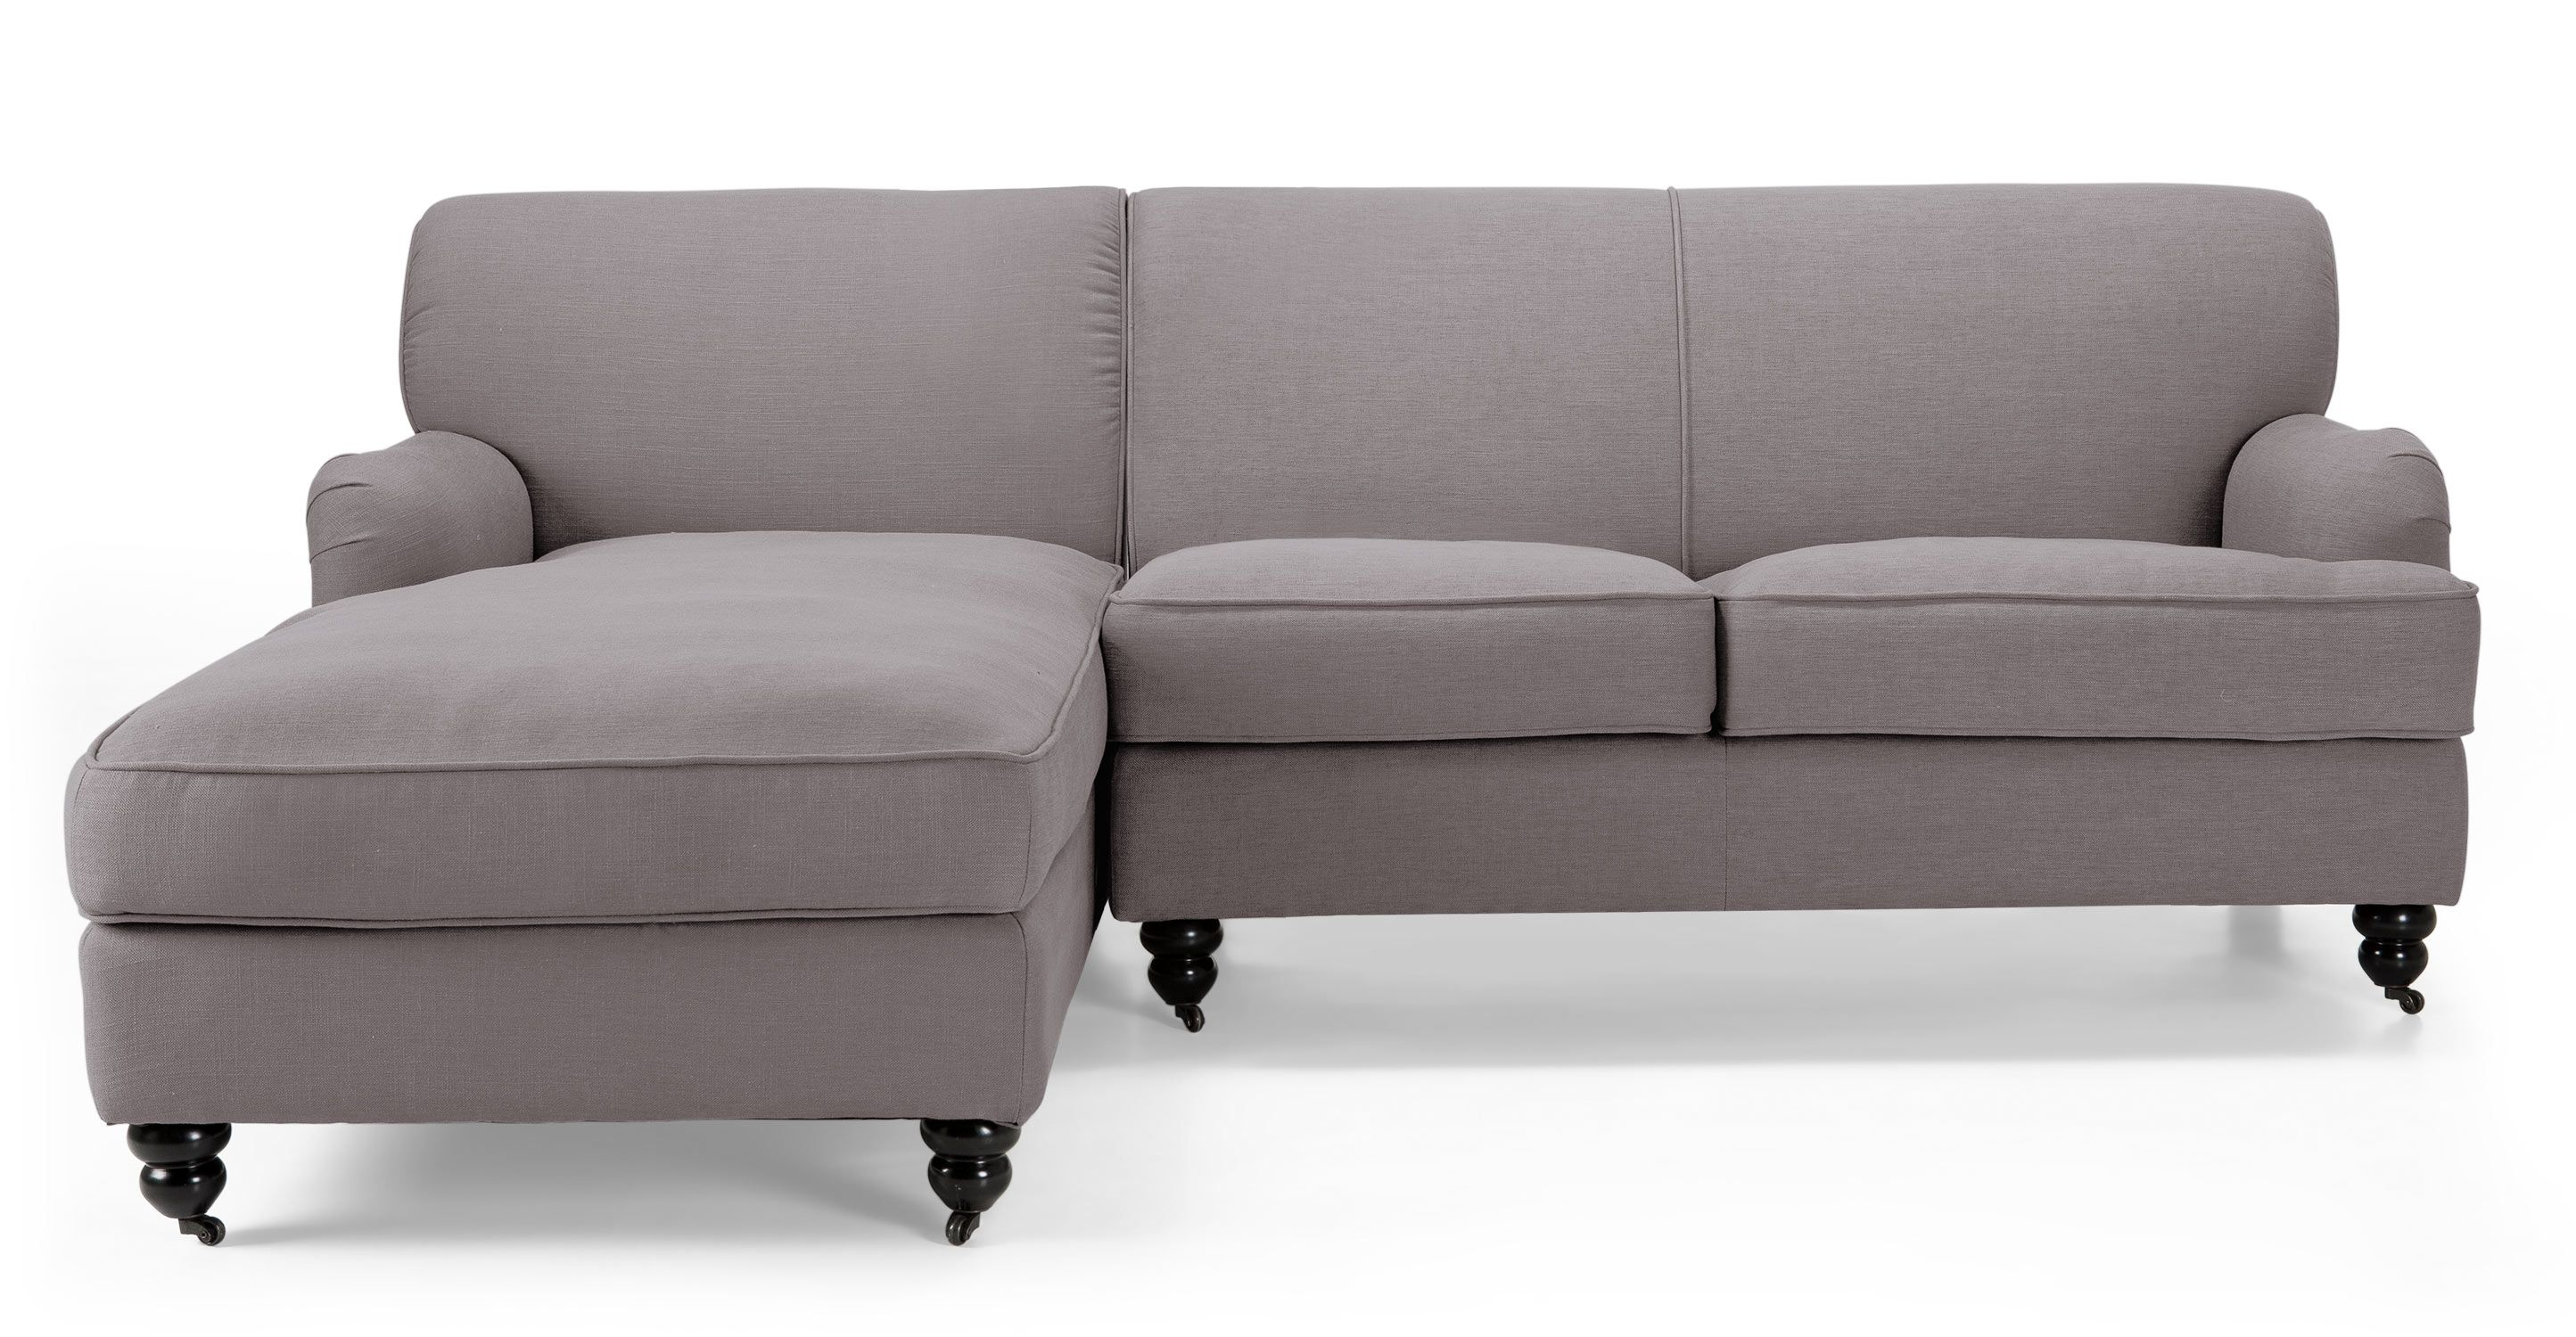 Graphite Grey Sofa